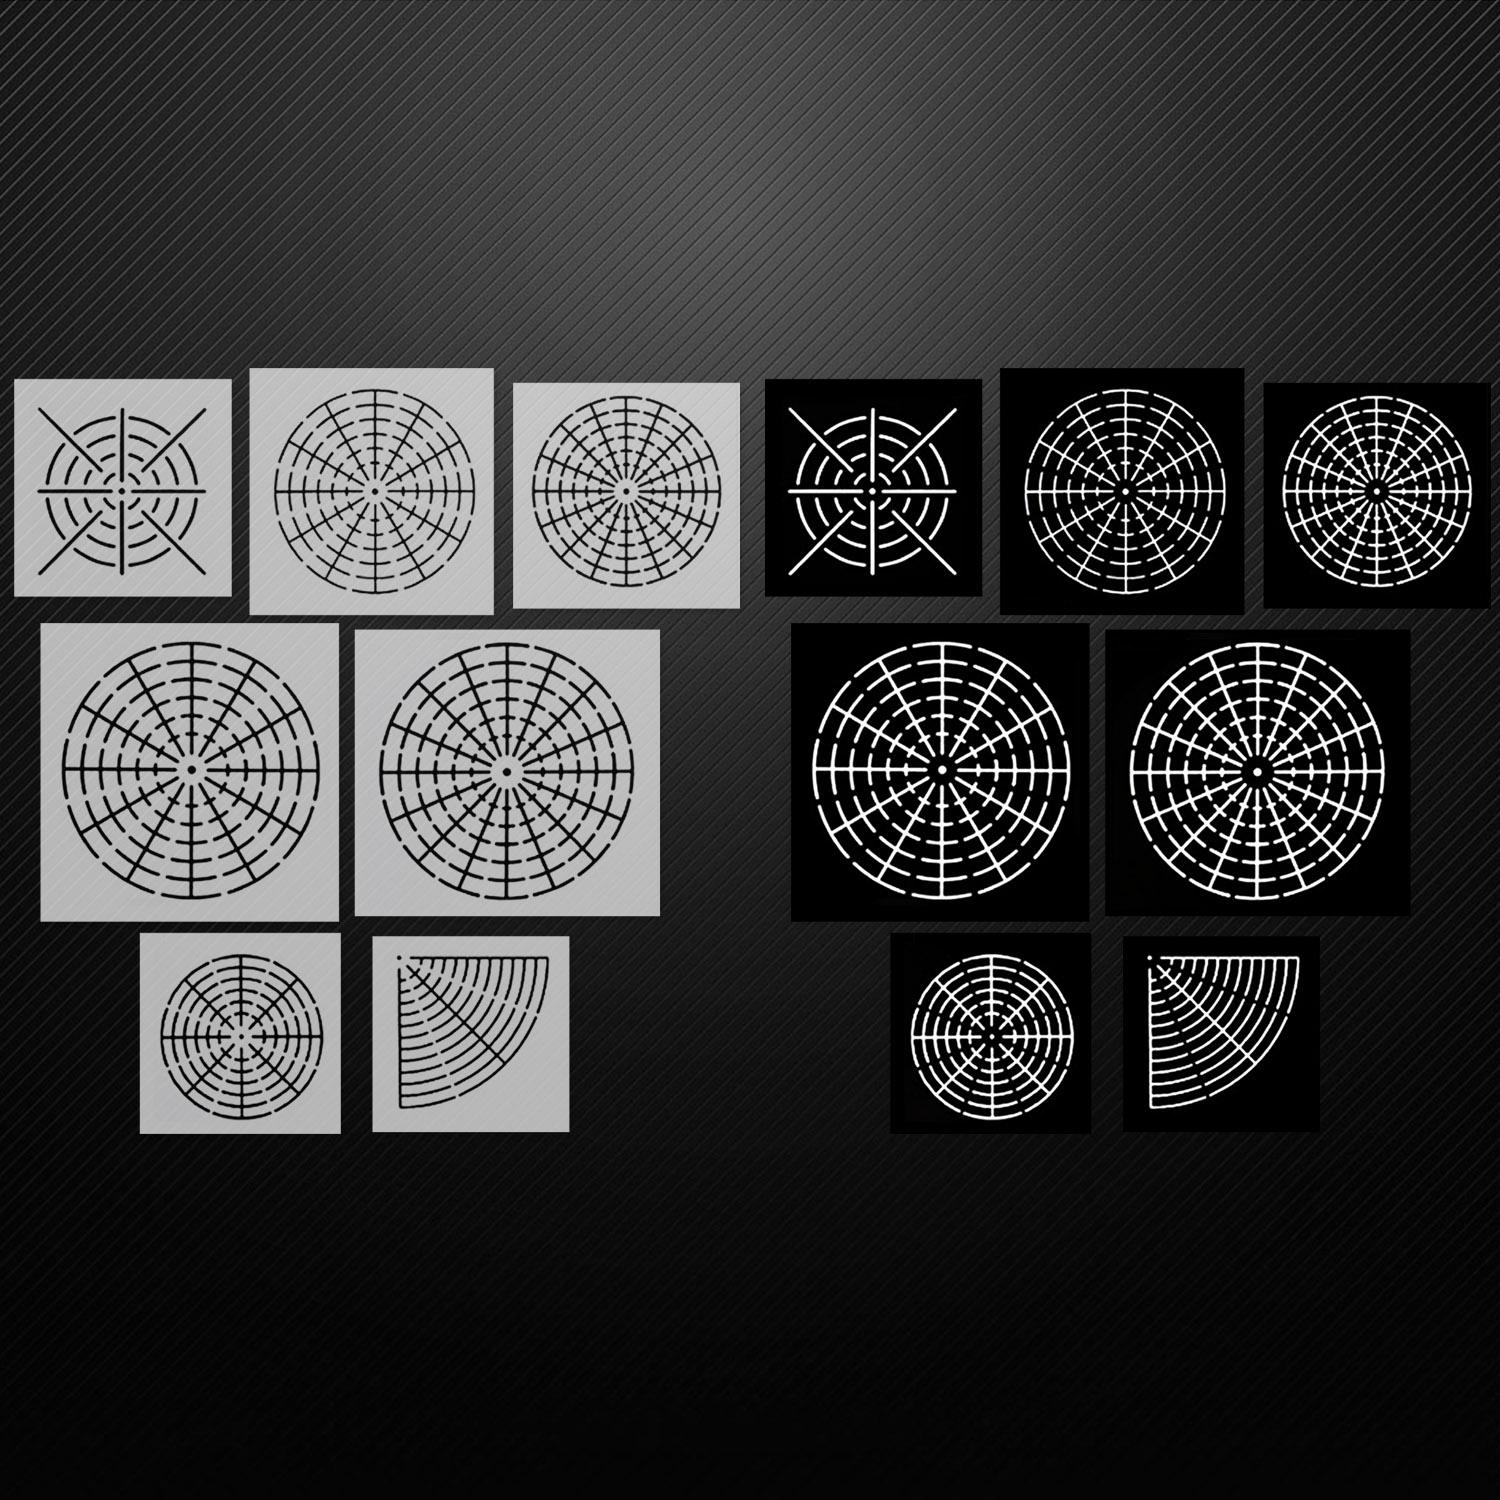 7PCS Assorted Style Mandala Dotting Painting Stencils Templates Tools With Black Cardboards For Wood Rocks Fabrics Wall Art